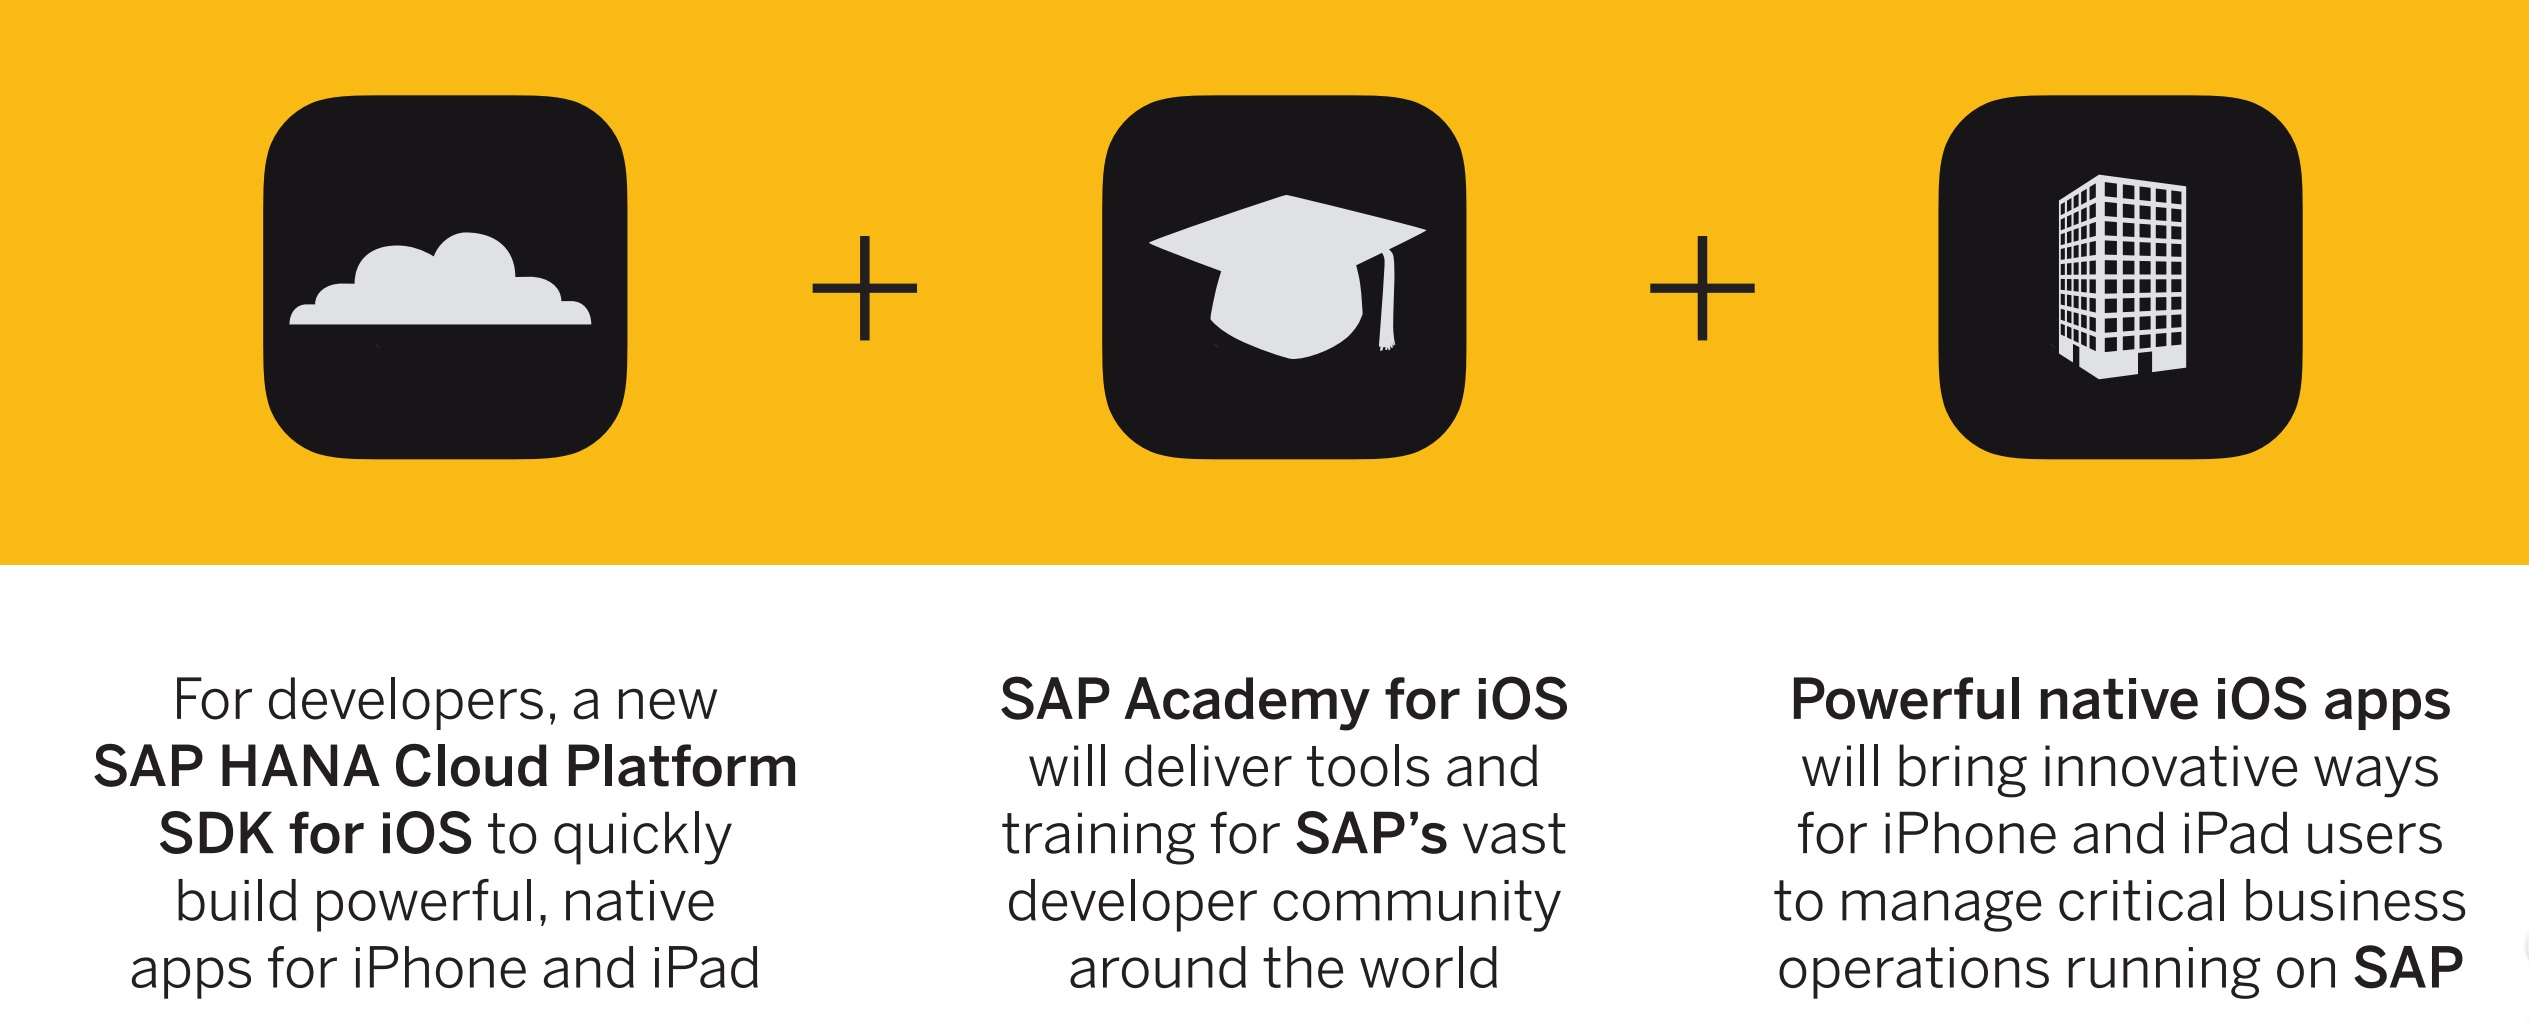 SAP and Apple announce new software developer kit and partnership TechNative